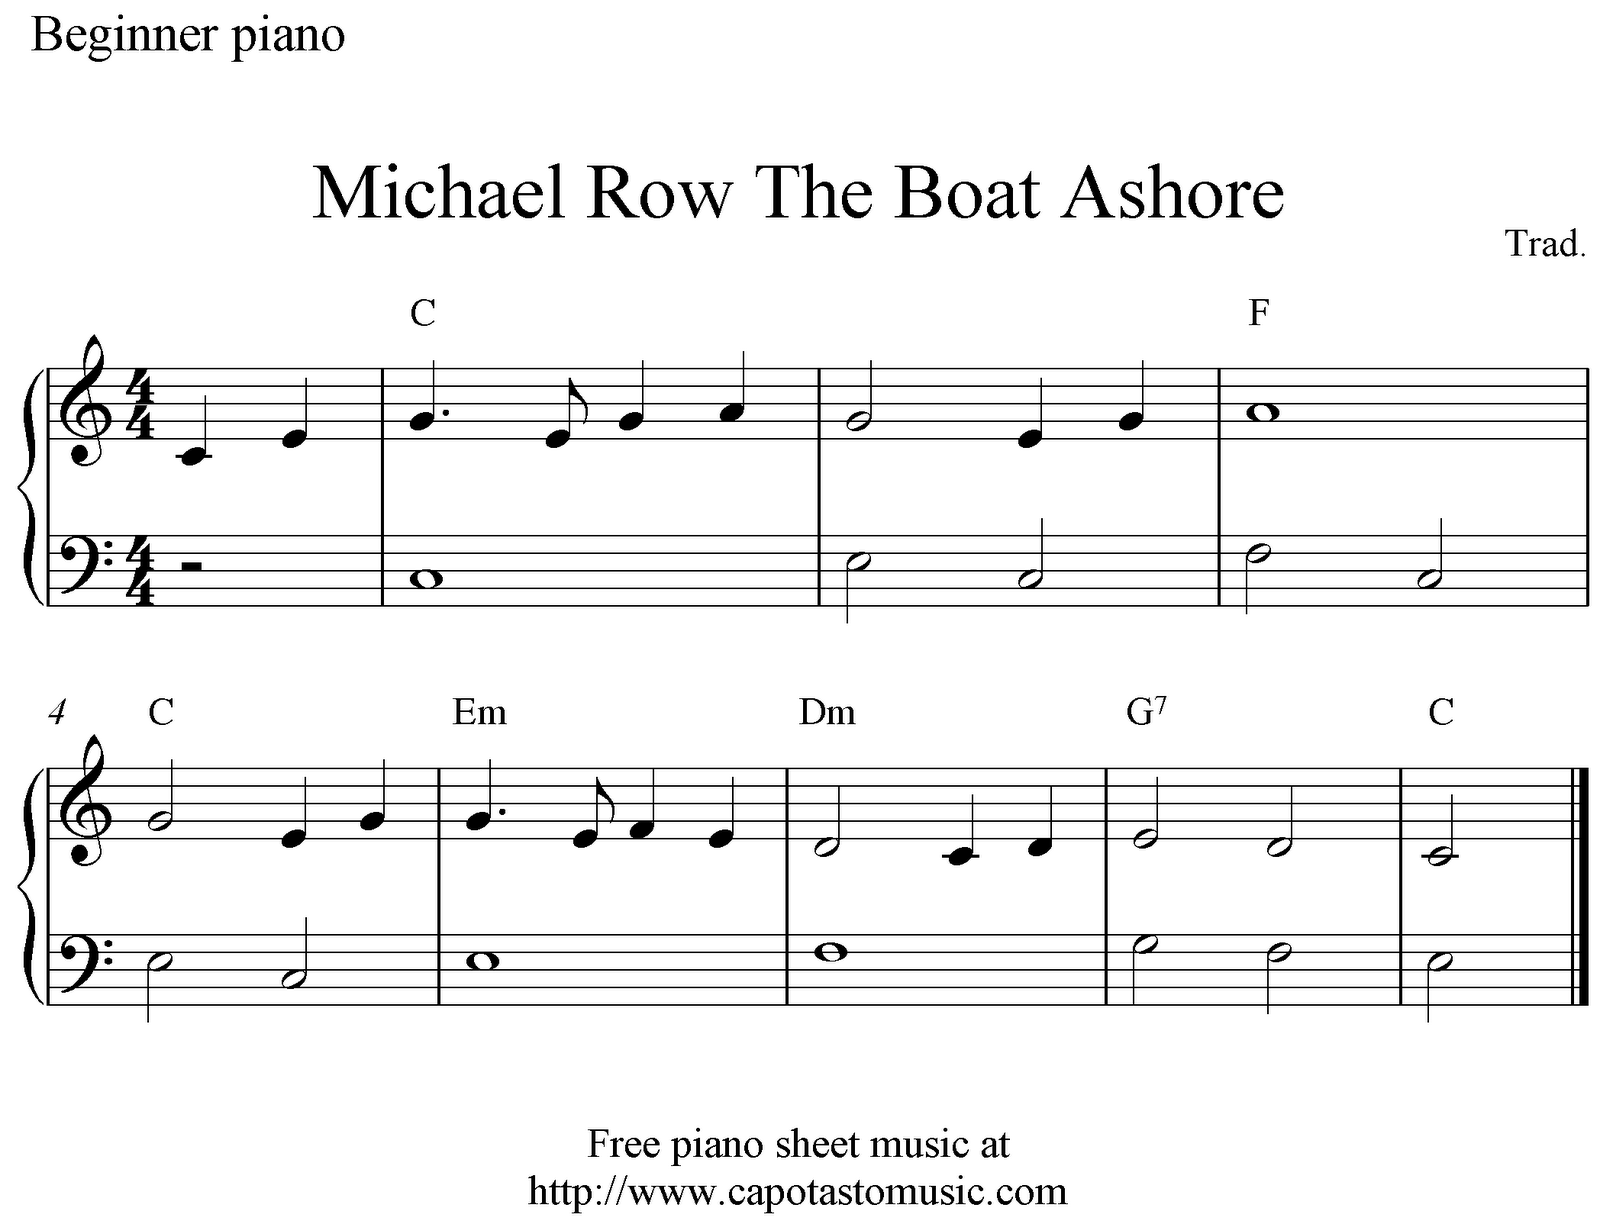 Free Easy Piano Sheet Music For Beginners Michael Row The